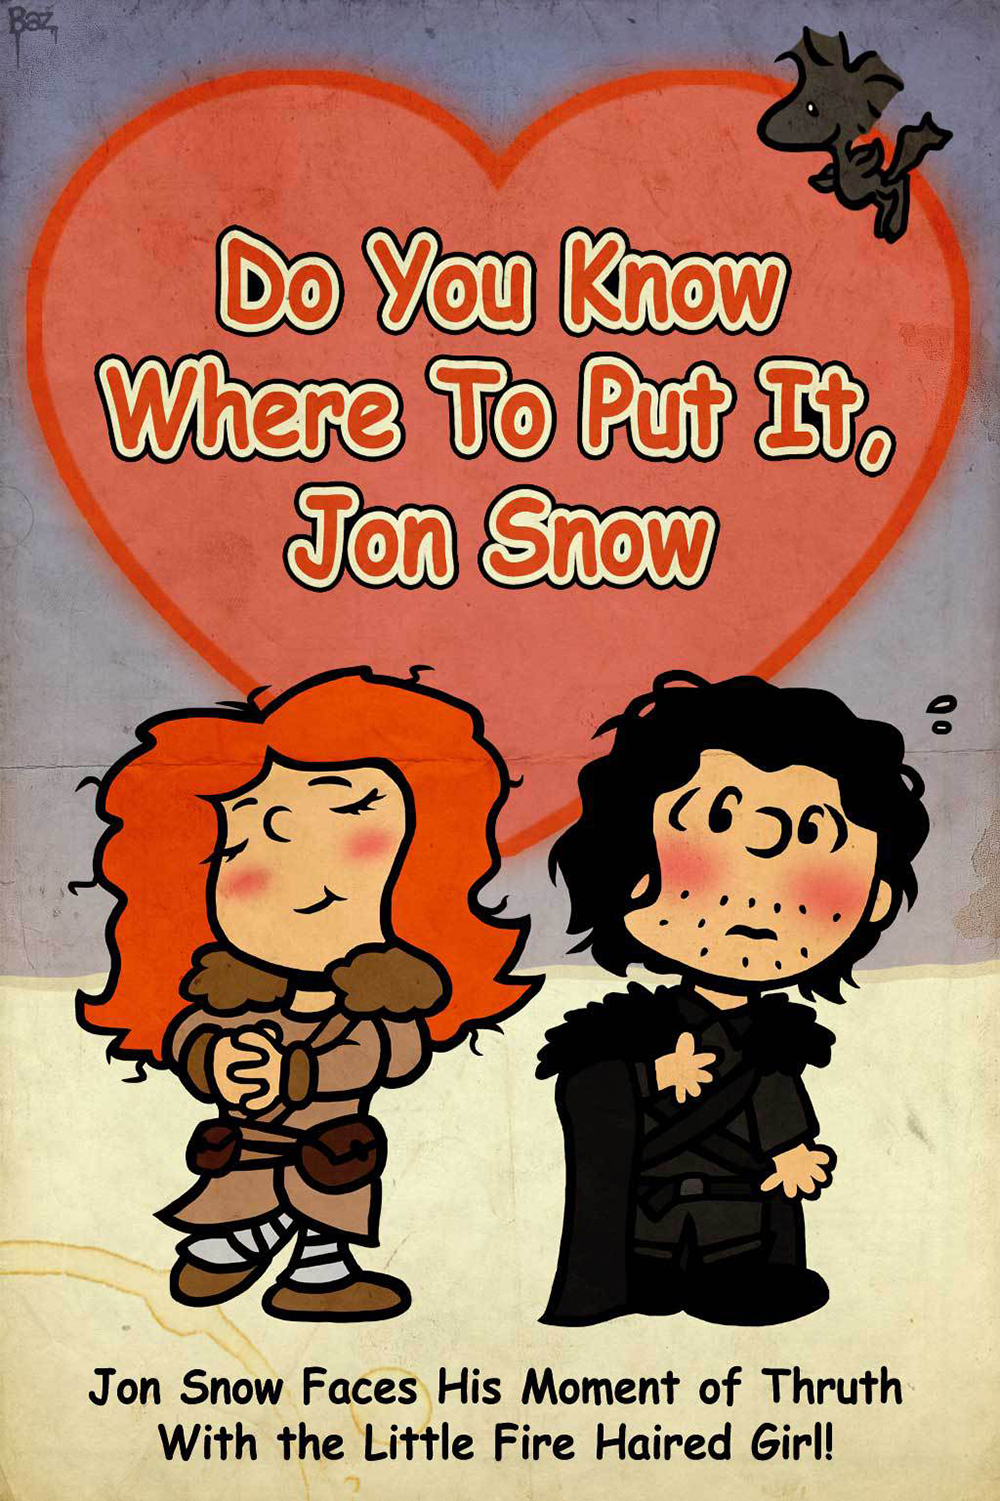 game of thrones valentine's cards, jon snow, ygritte, charlie brown